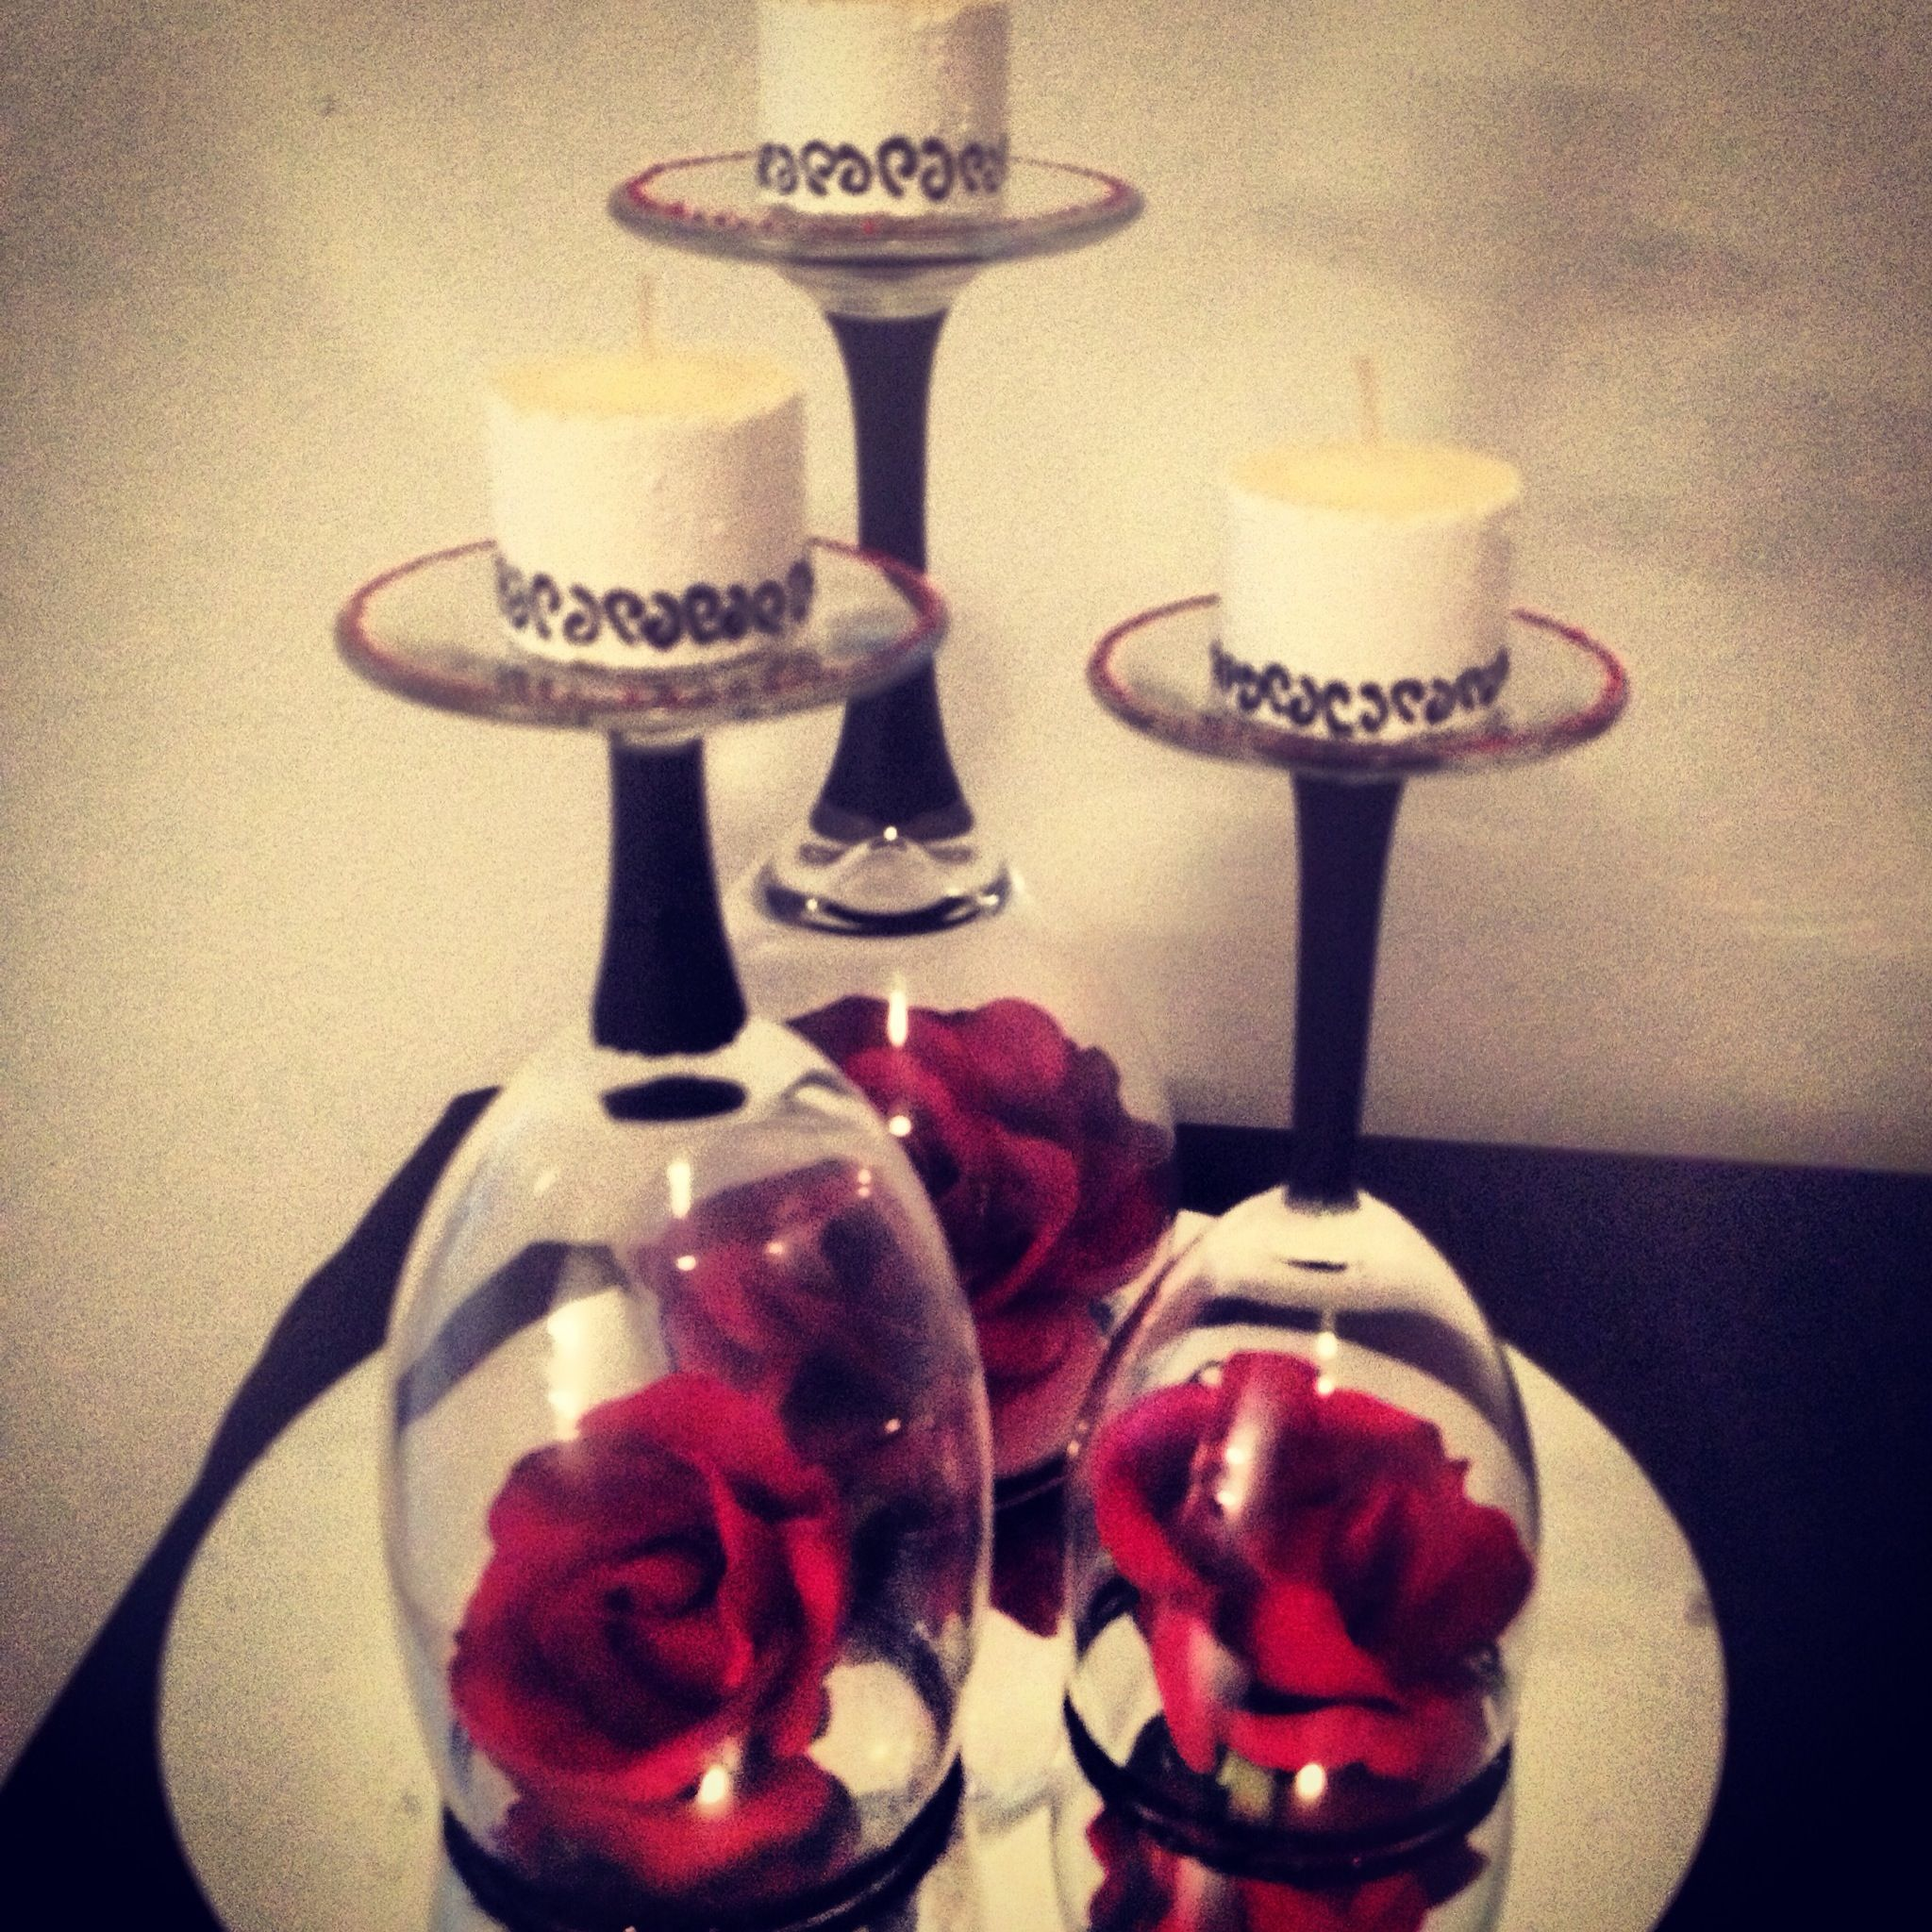 Wedding decorations red  We could paint the stems black with the candles be red and the